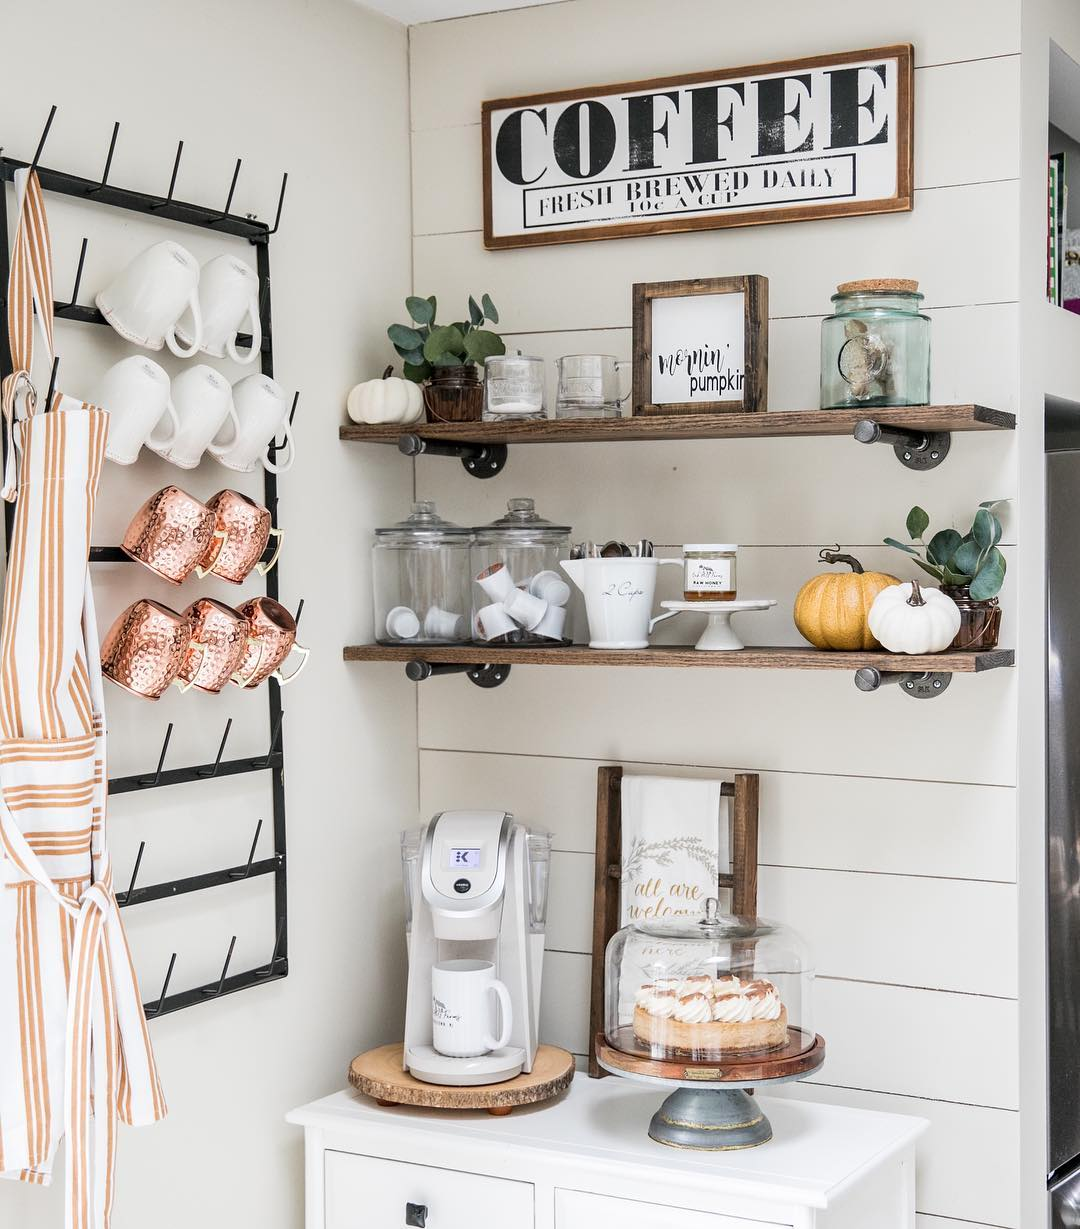 Just 7 Farmhouse Coffee Bar Ideas Guaranteed to Brighten Up Your Morning Routine | Hunker